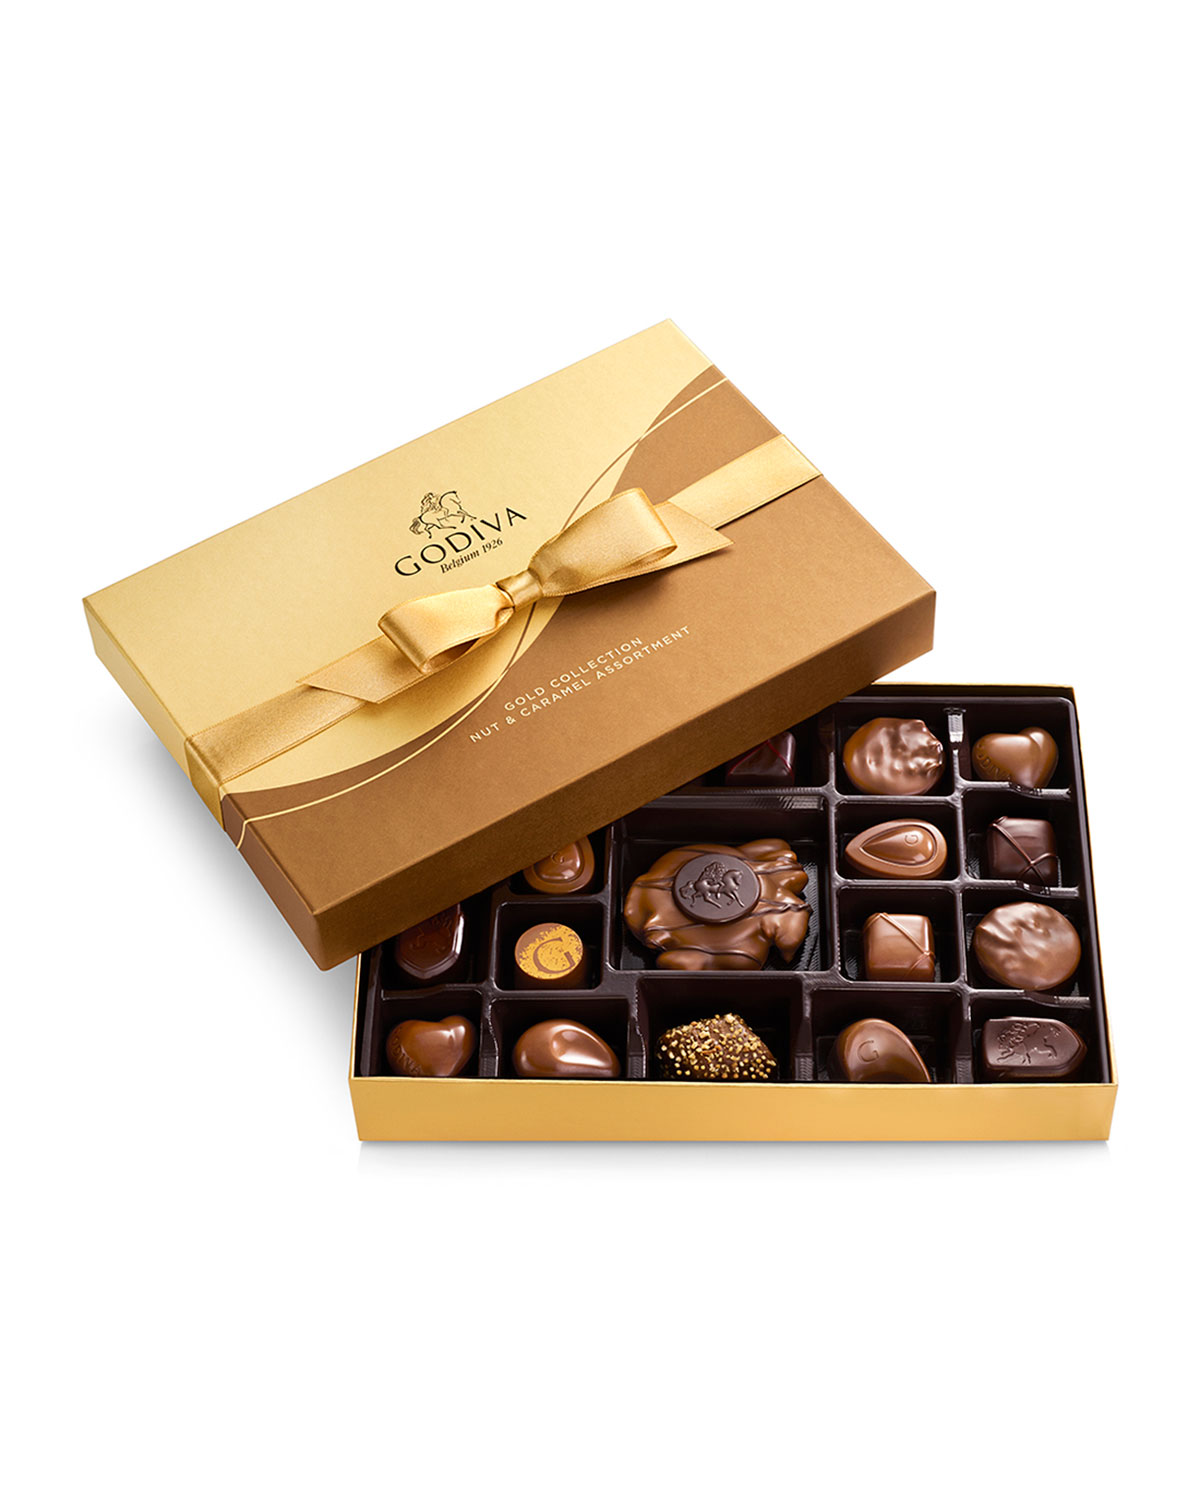 19-Piece Nut & Caramel Gift Box